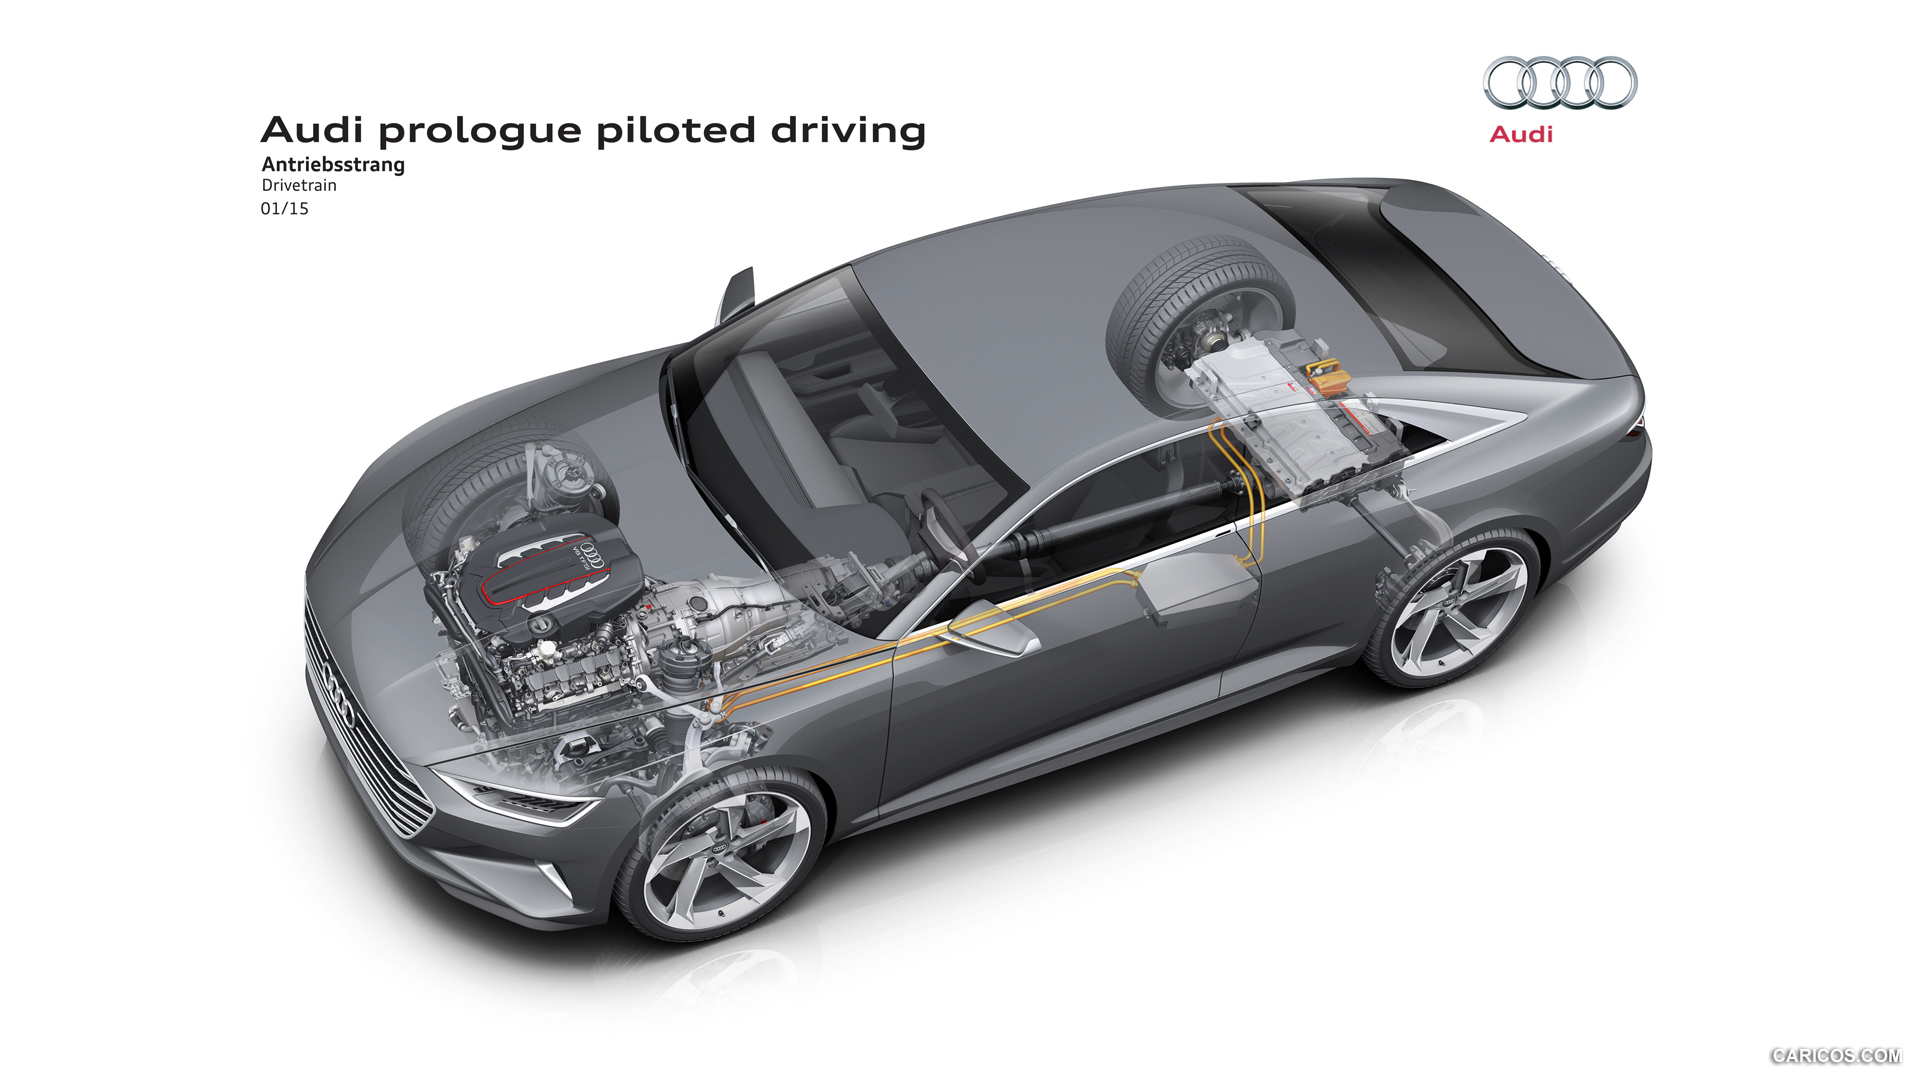 Audi Piloted Driving >> Audi Prologue Piloted Driving Picture 135285 Audi Photo